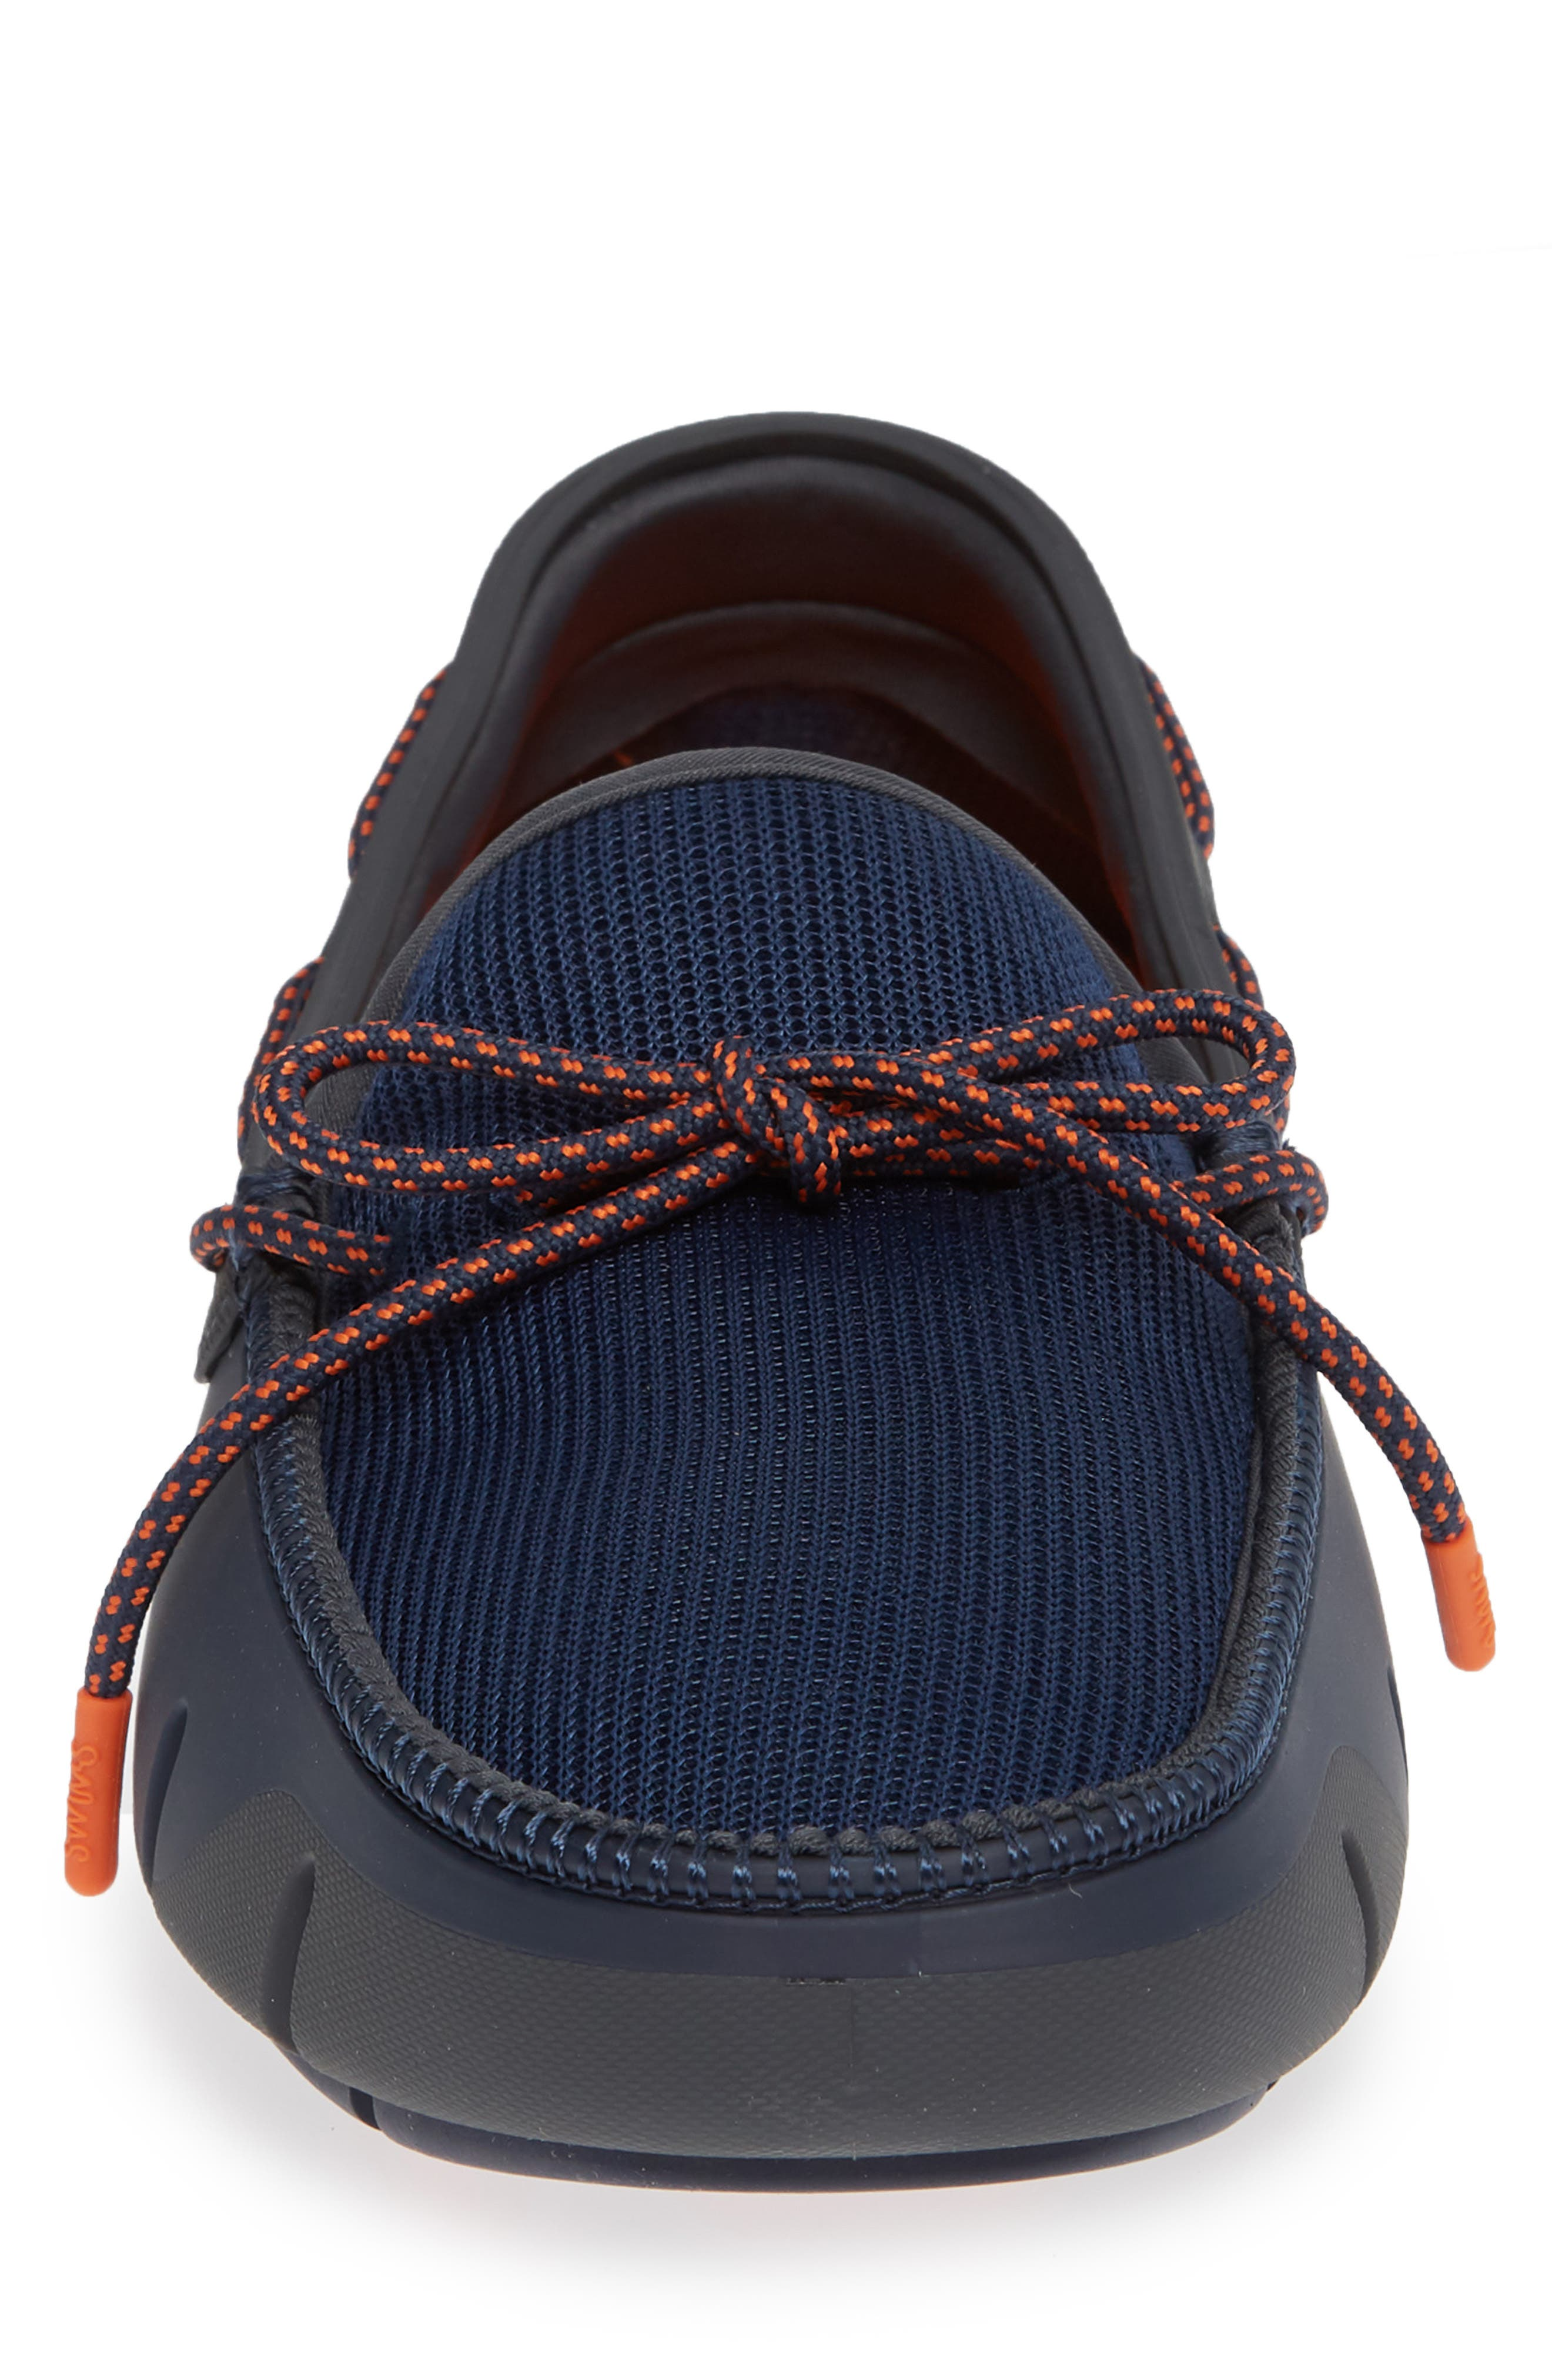 Stride Lace Loafer,                             Alternate thumbnail 4, color,                             Navy/ Dark Gray